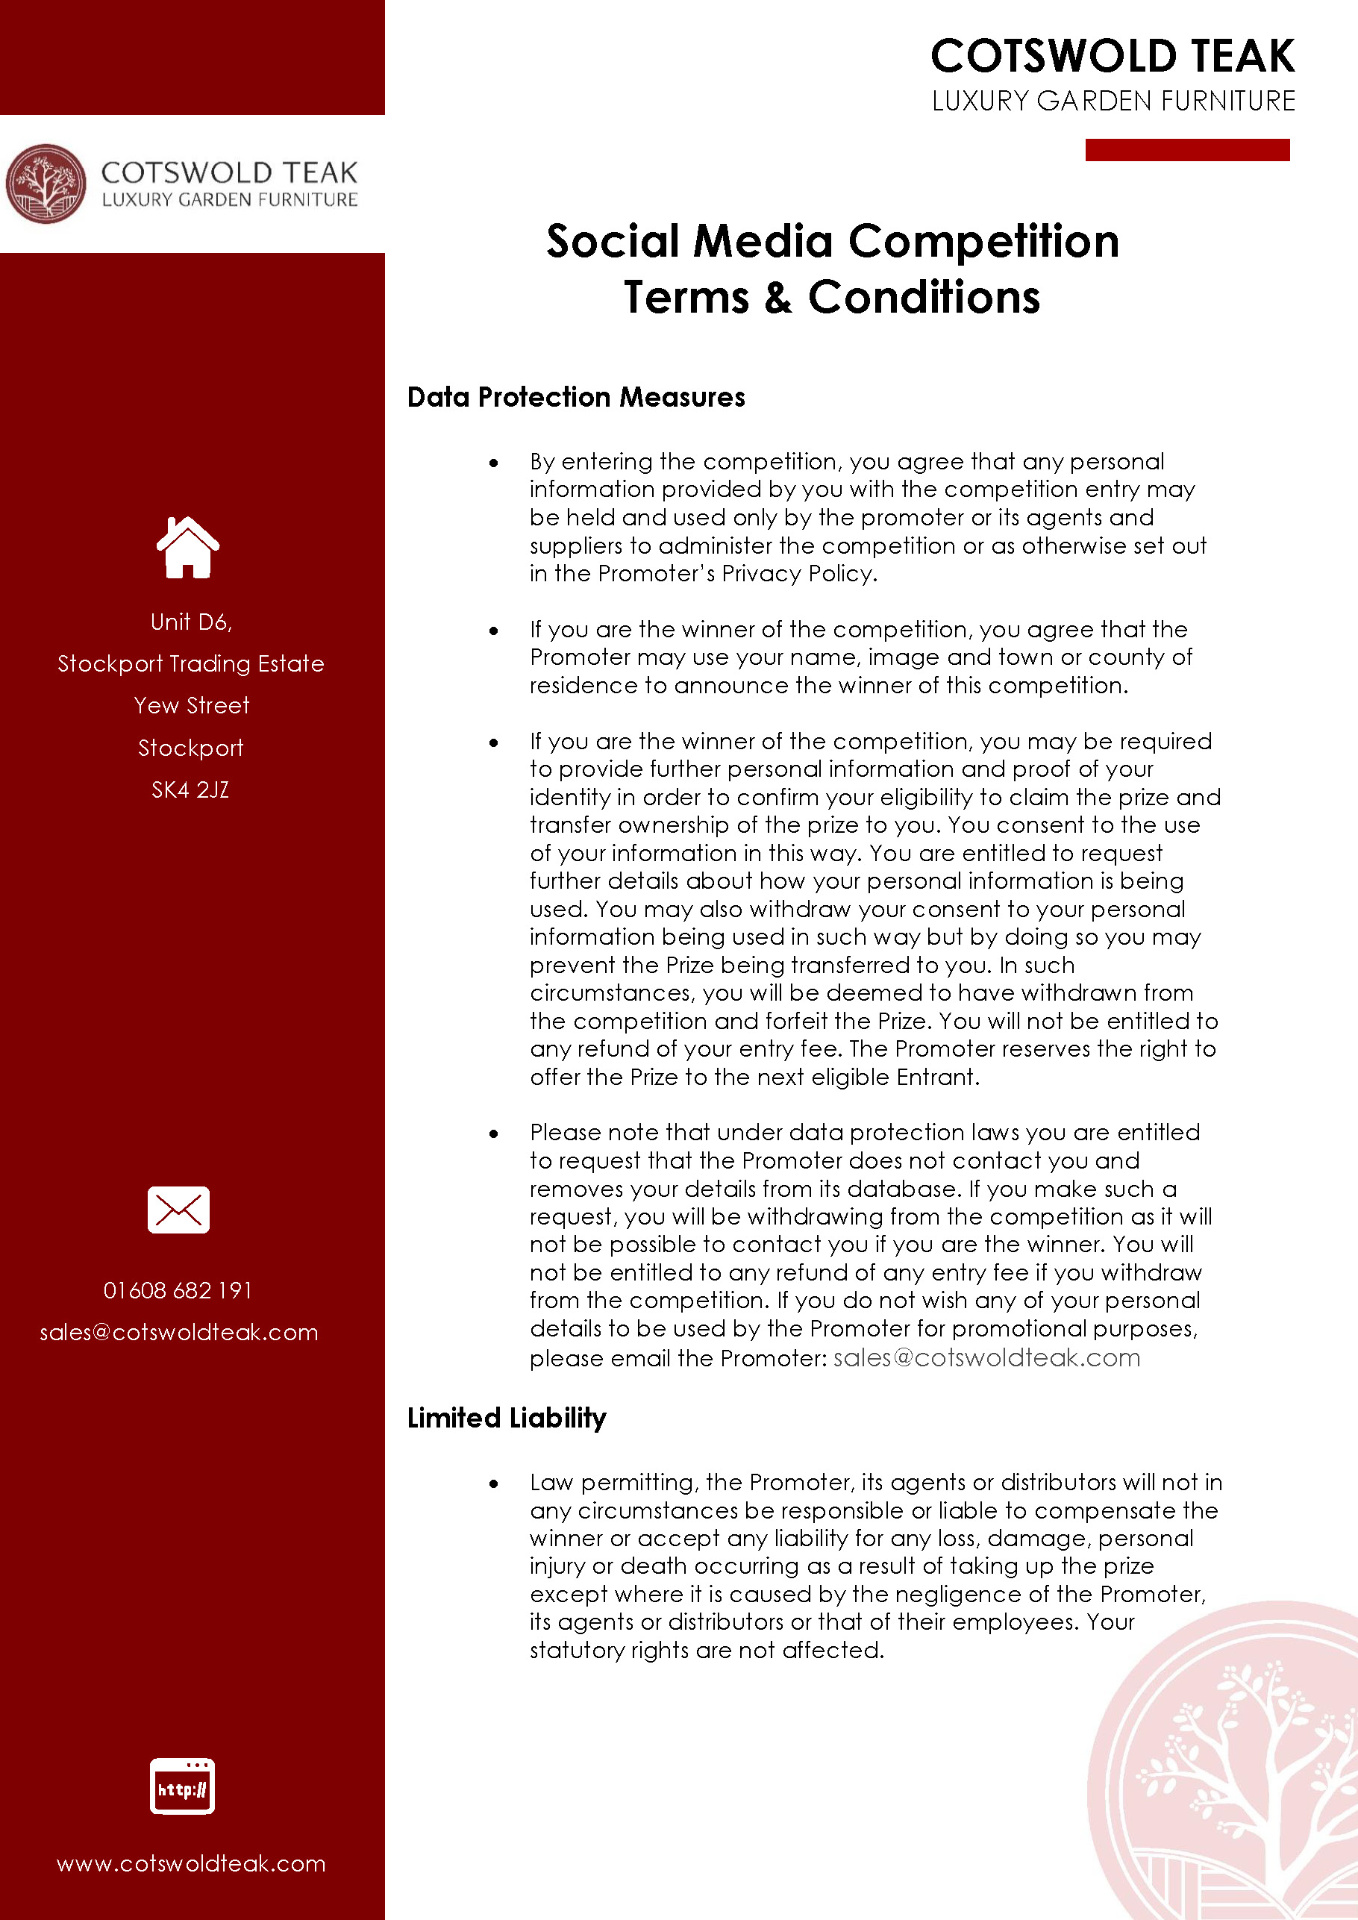 cotswold-social-media-competition-ts-cs-data-protection-measures-and-liability.jpg